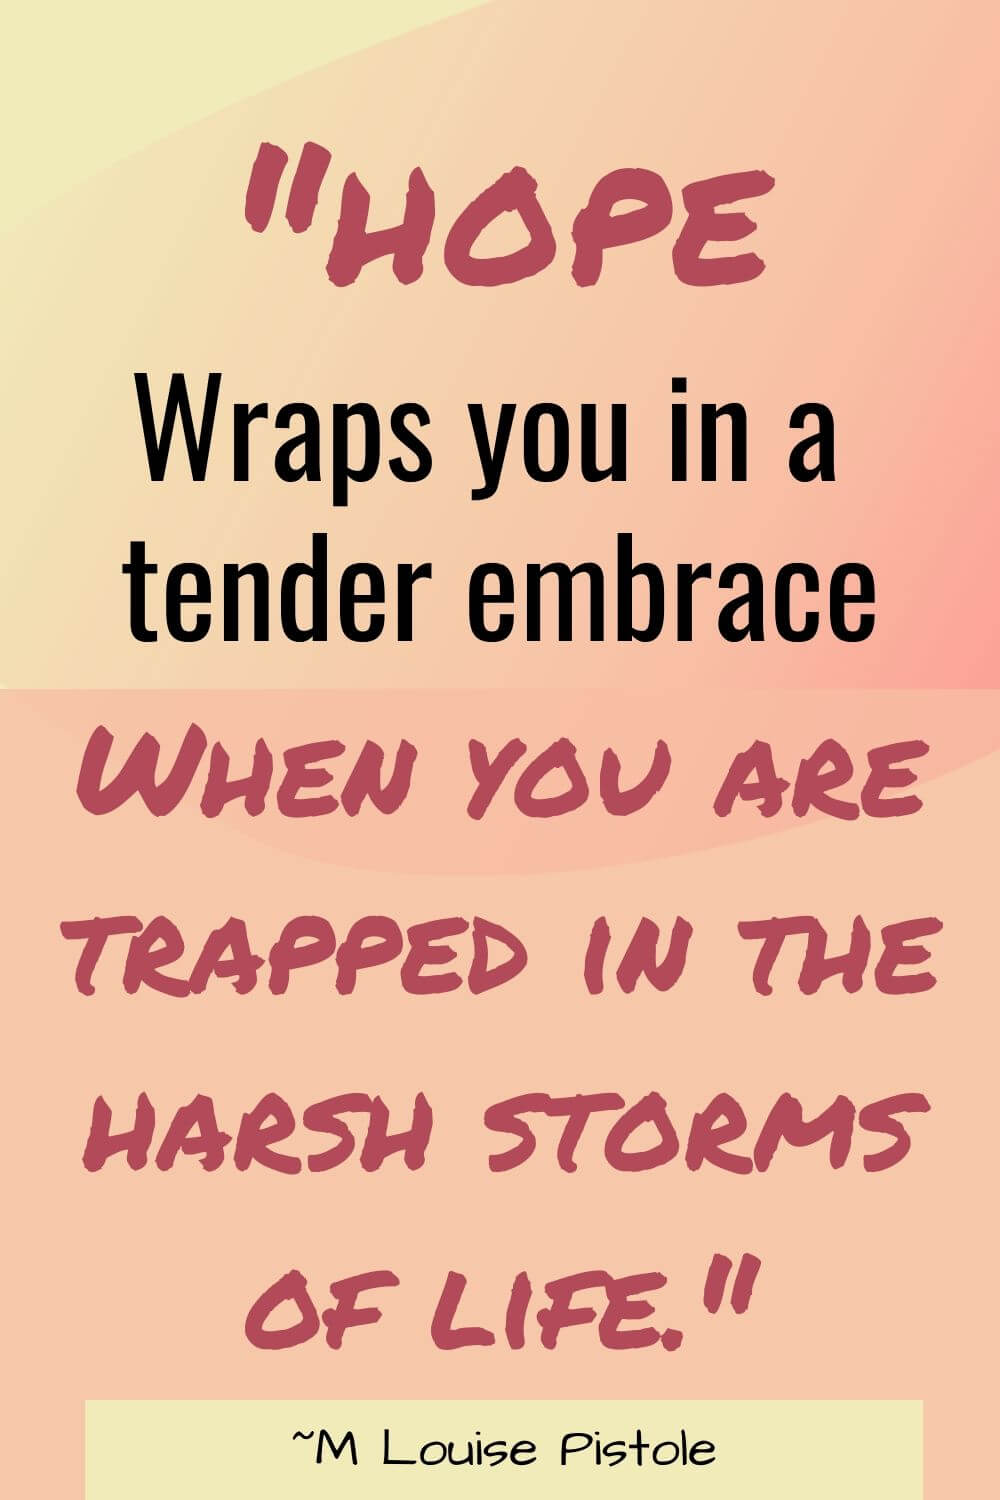 Hope wraps you in a tender embrace when you are trapped in the harsh storms of life.